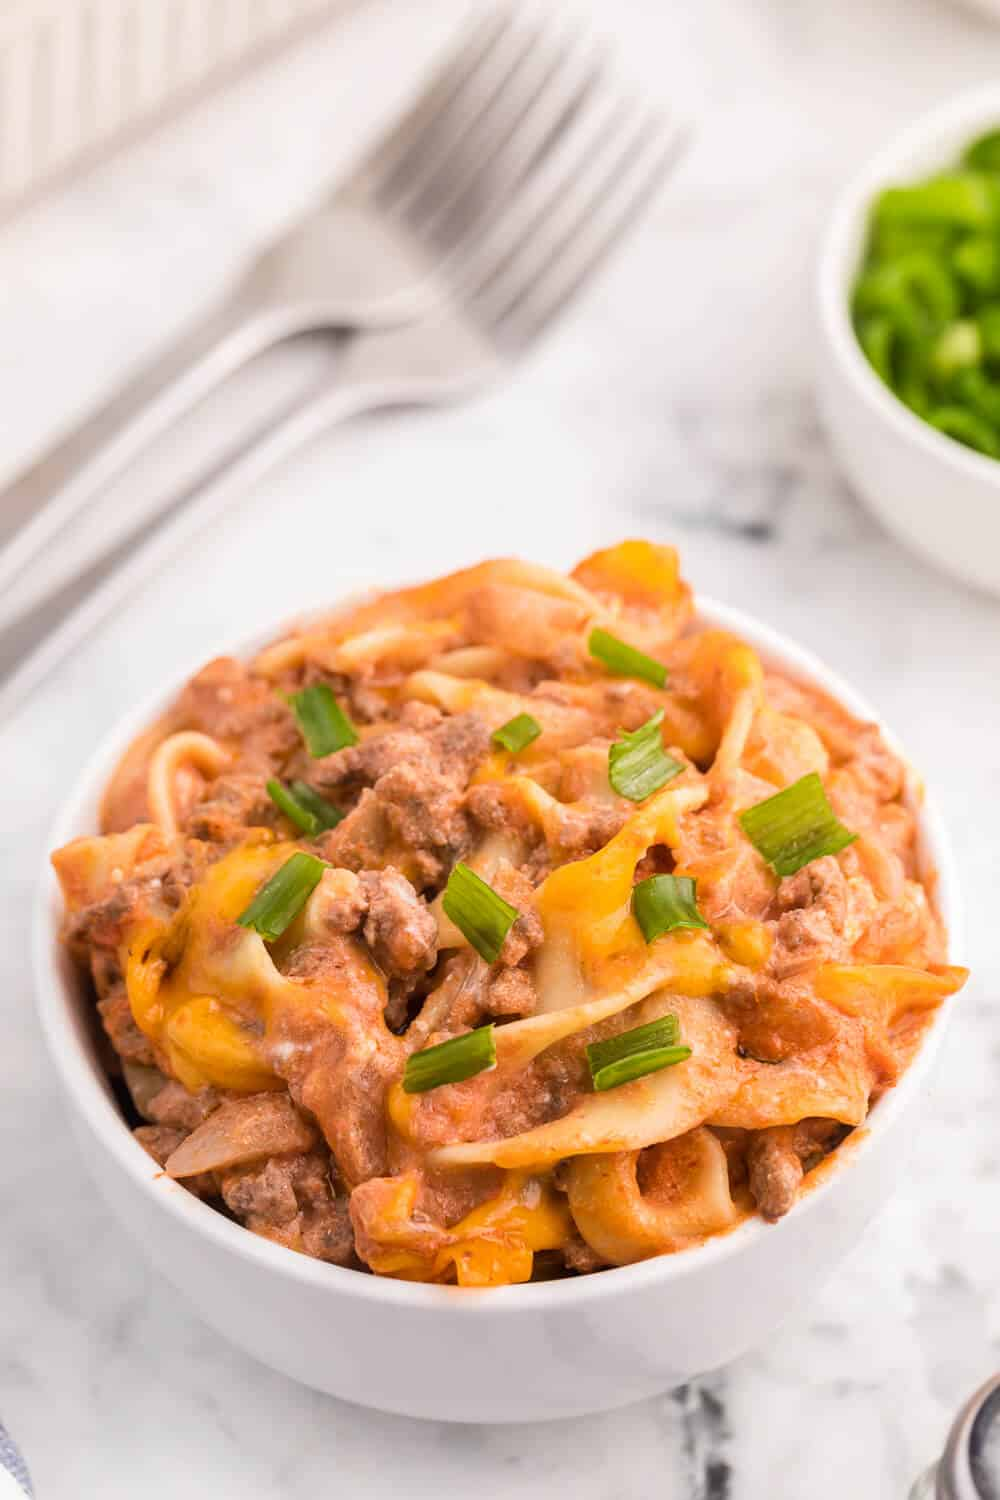 Beef Noodle Bake - This beefy pasta casserole, with crowd pleasing flavours of cheese, garlic and sour cream, is the perfect make-ahead dish for feeding a large group.